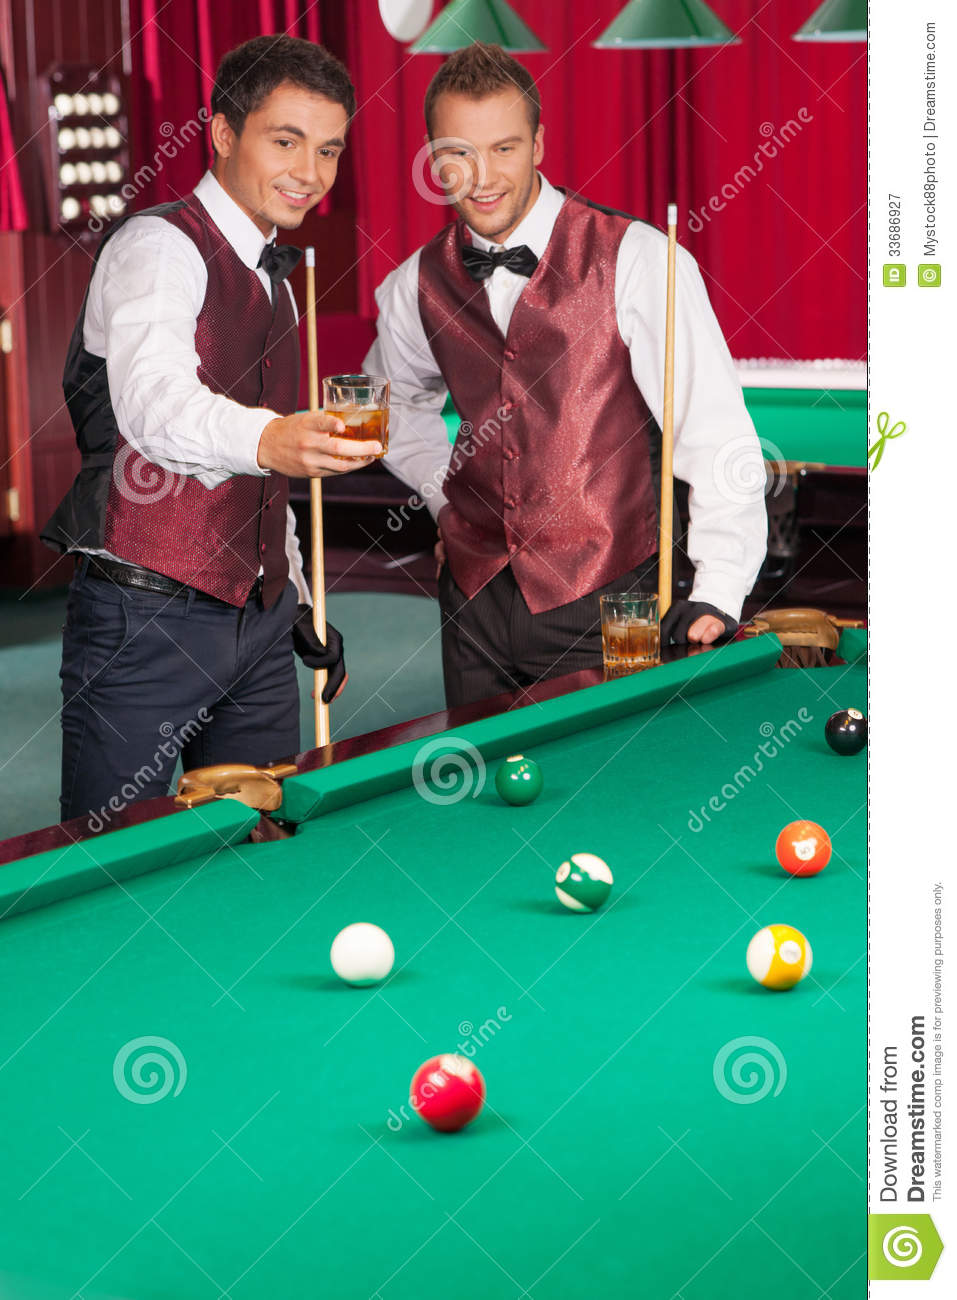 Pool Game Royalty Free Stock Photography Image 33686927